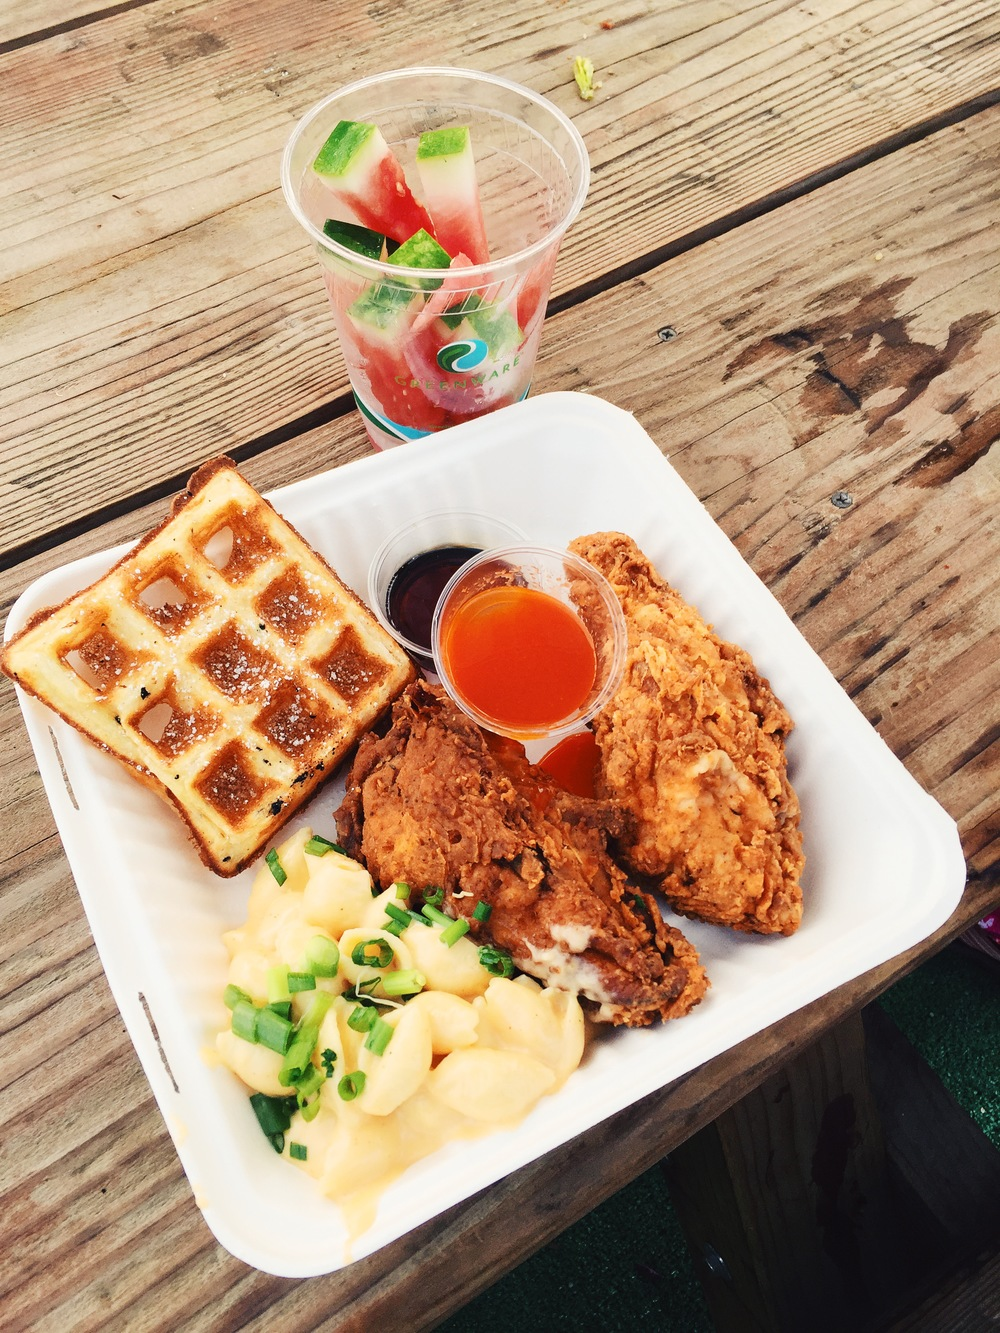 Chicken and waffles. Amazing!